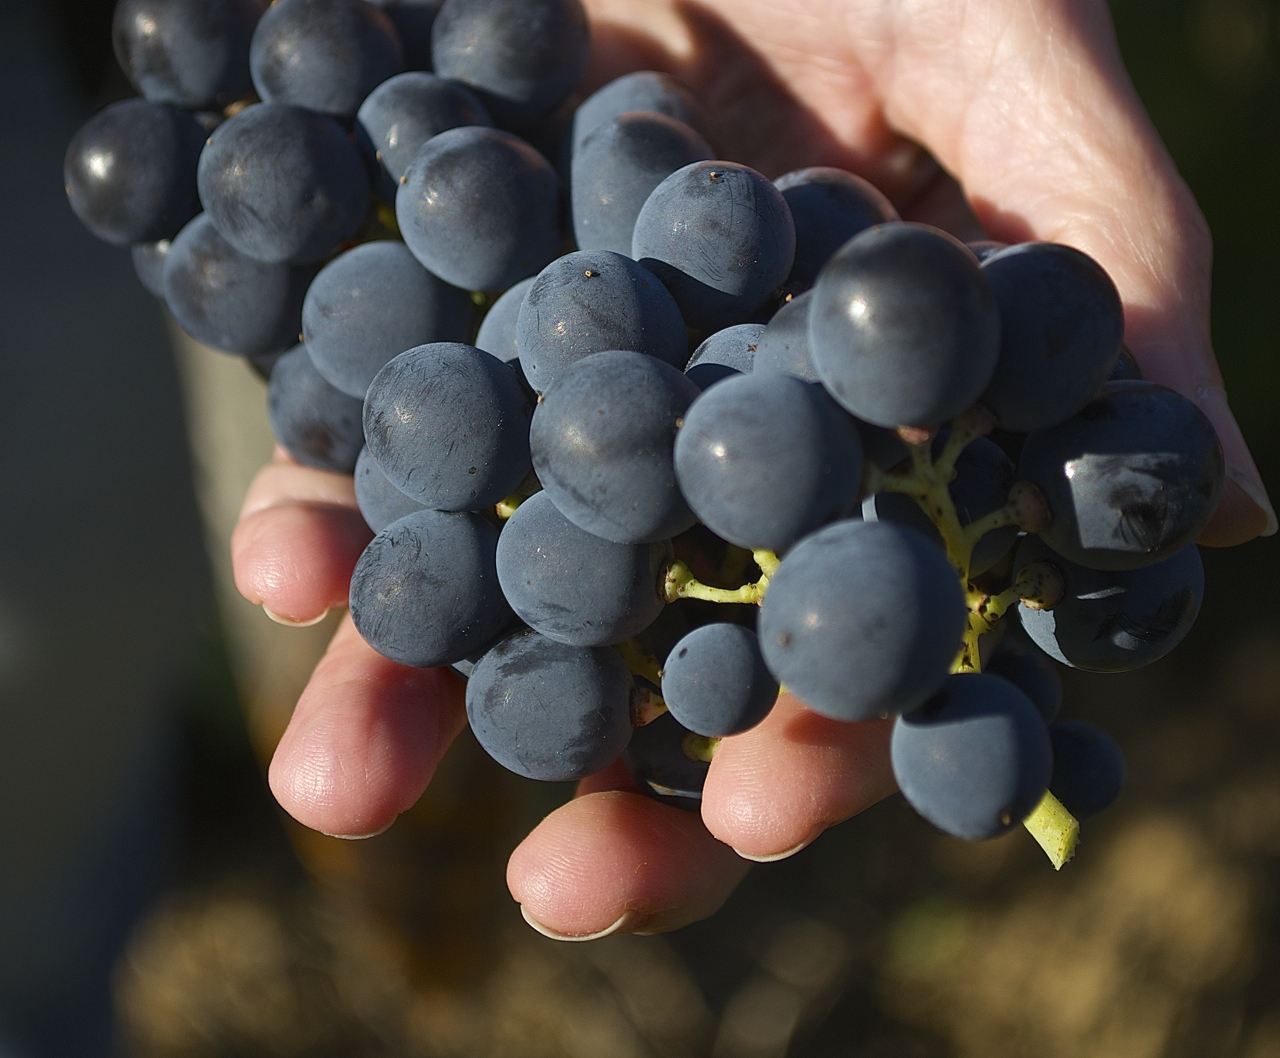 grenache grapes with hand